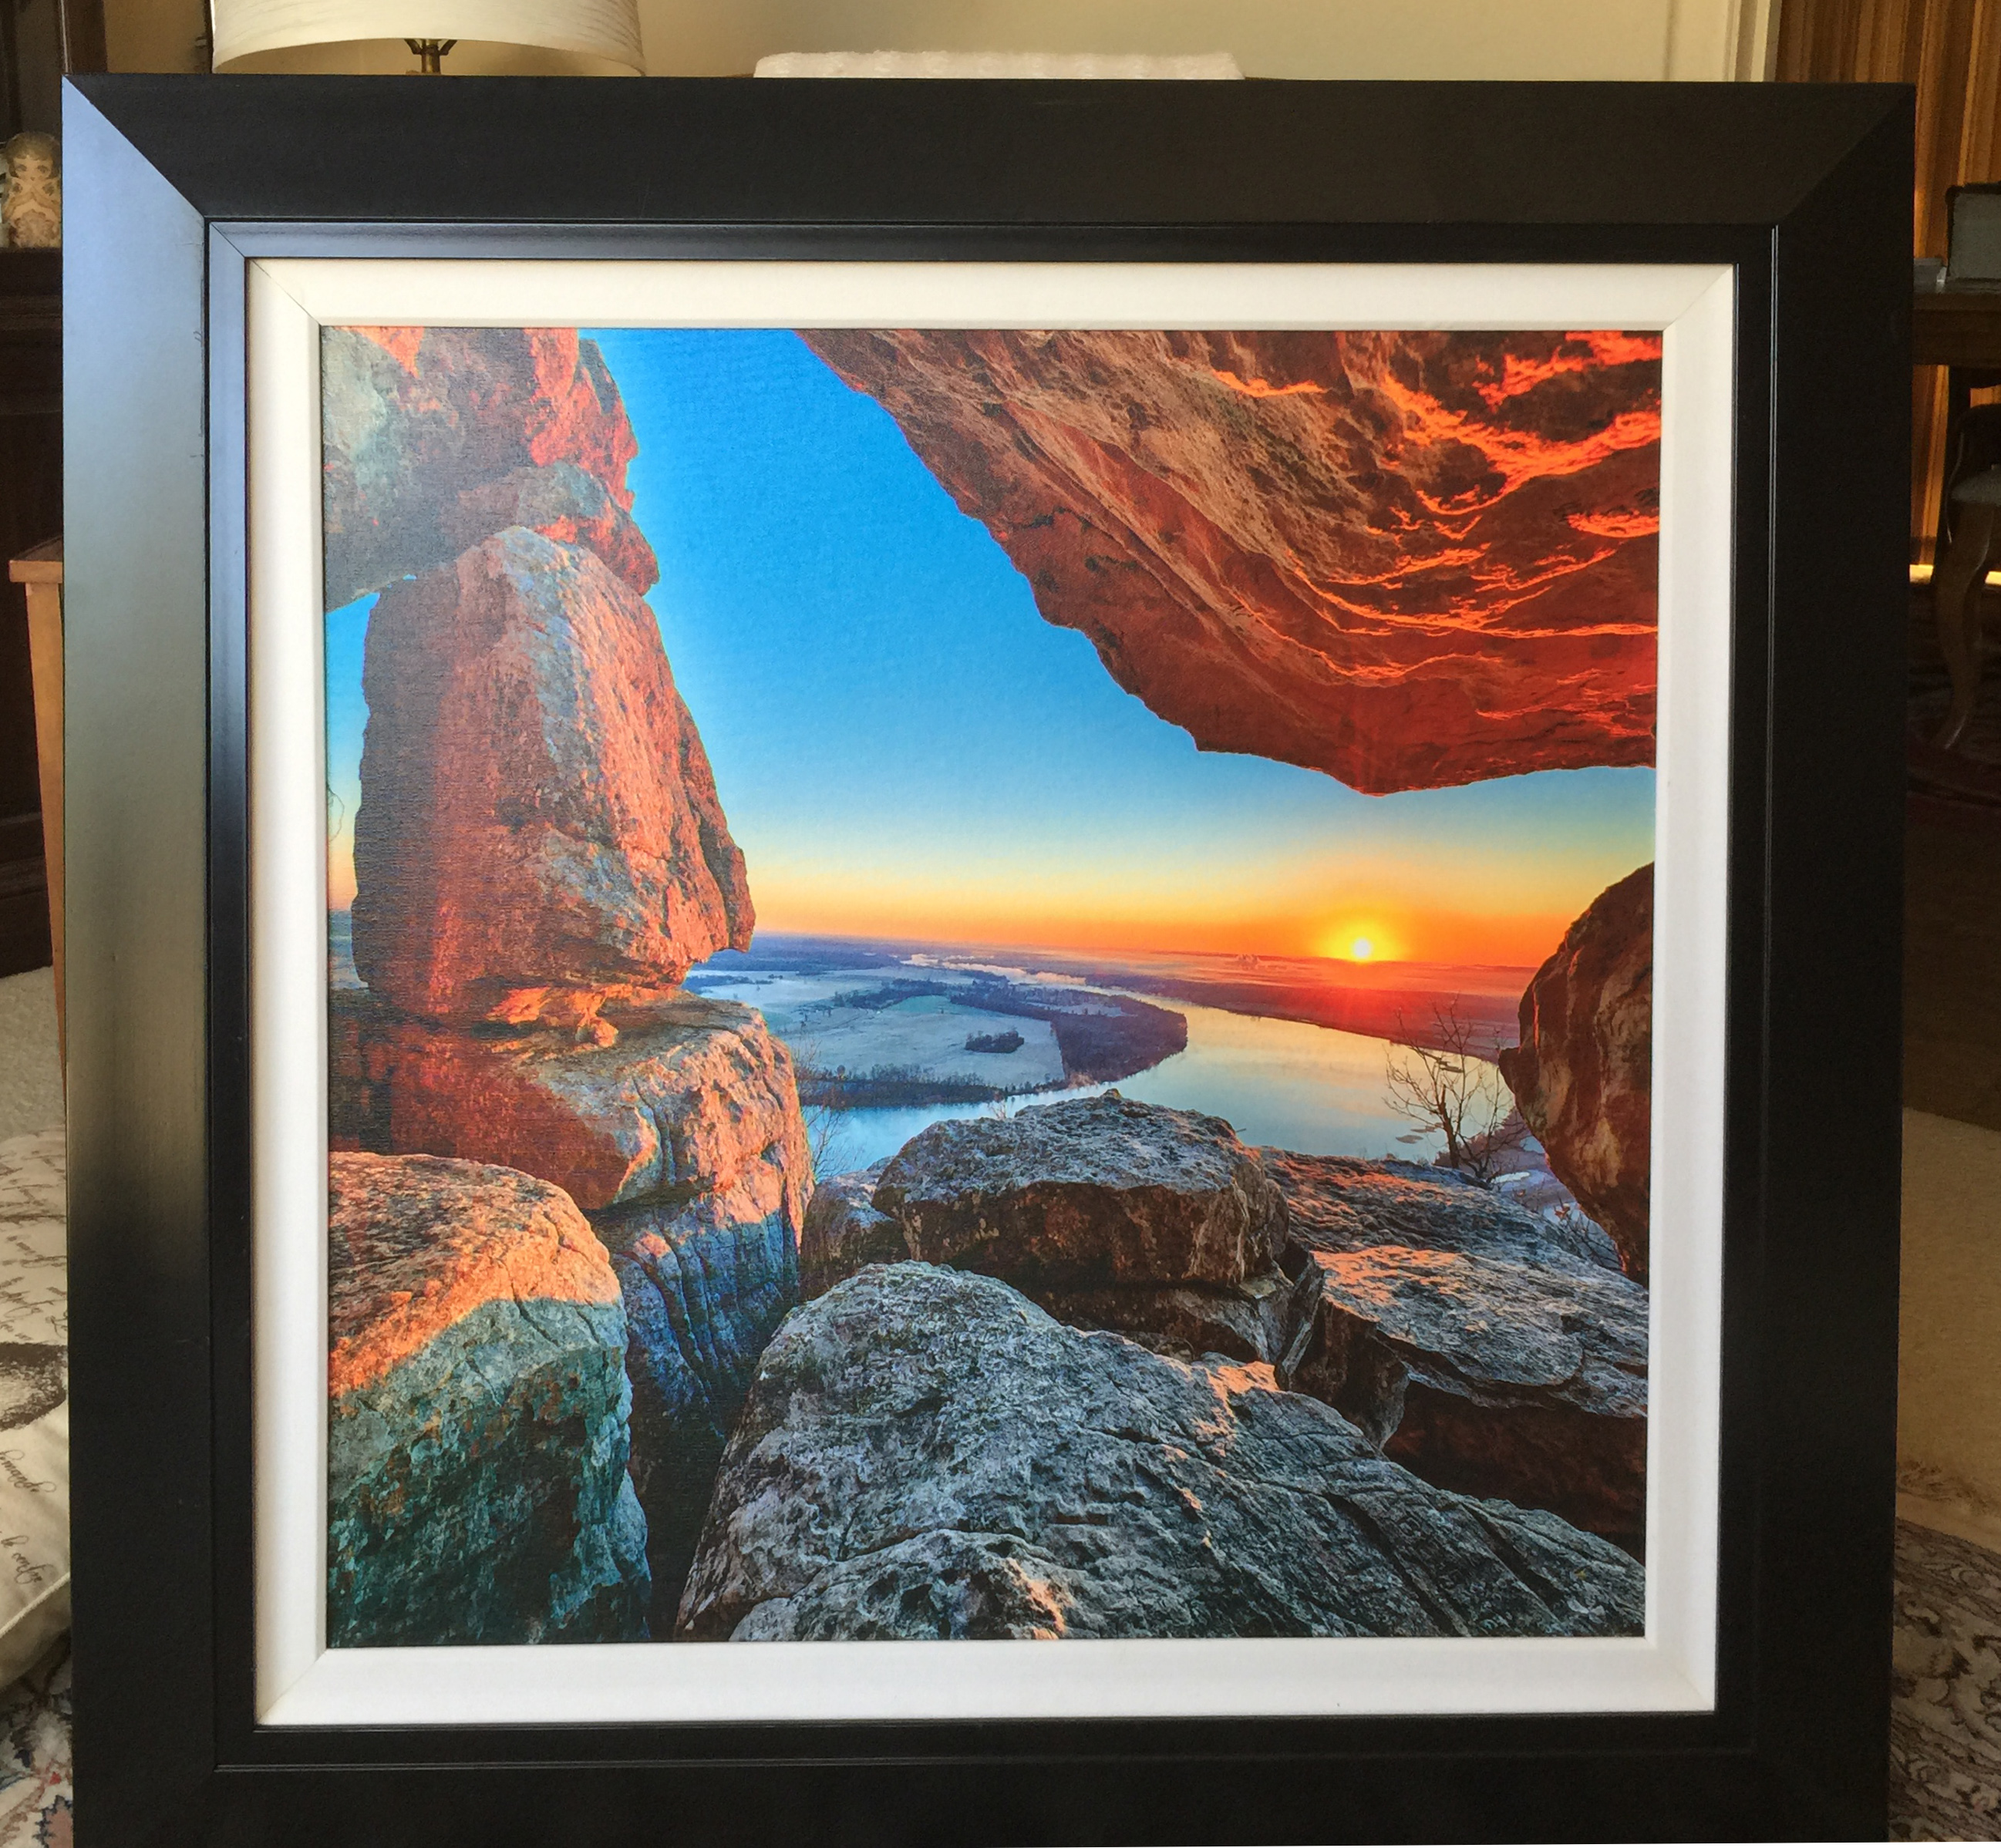 an example of a finished and framed canvas print on gator board